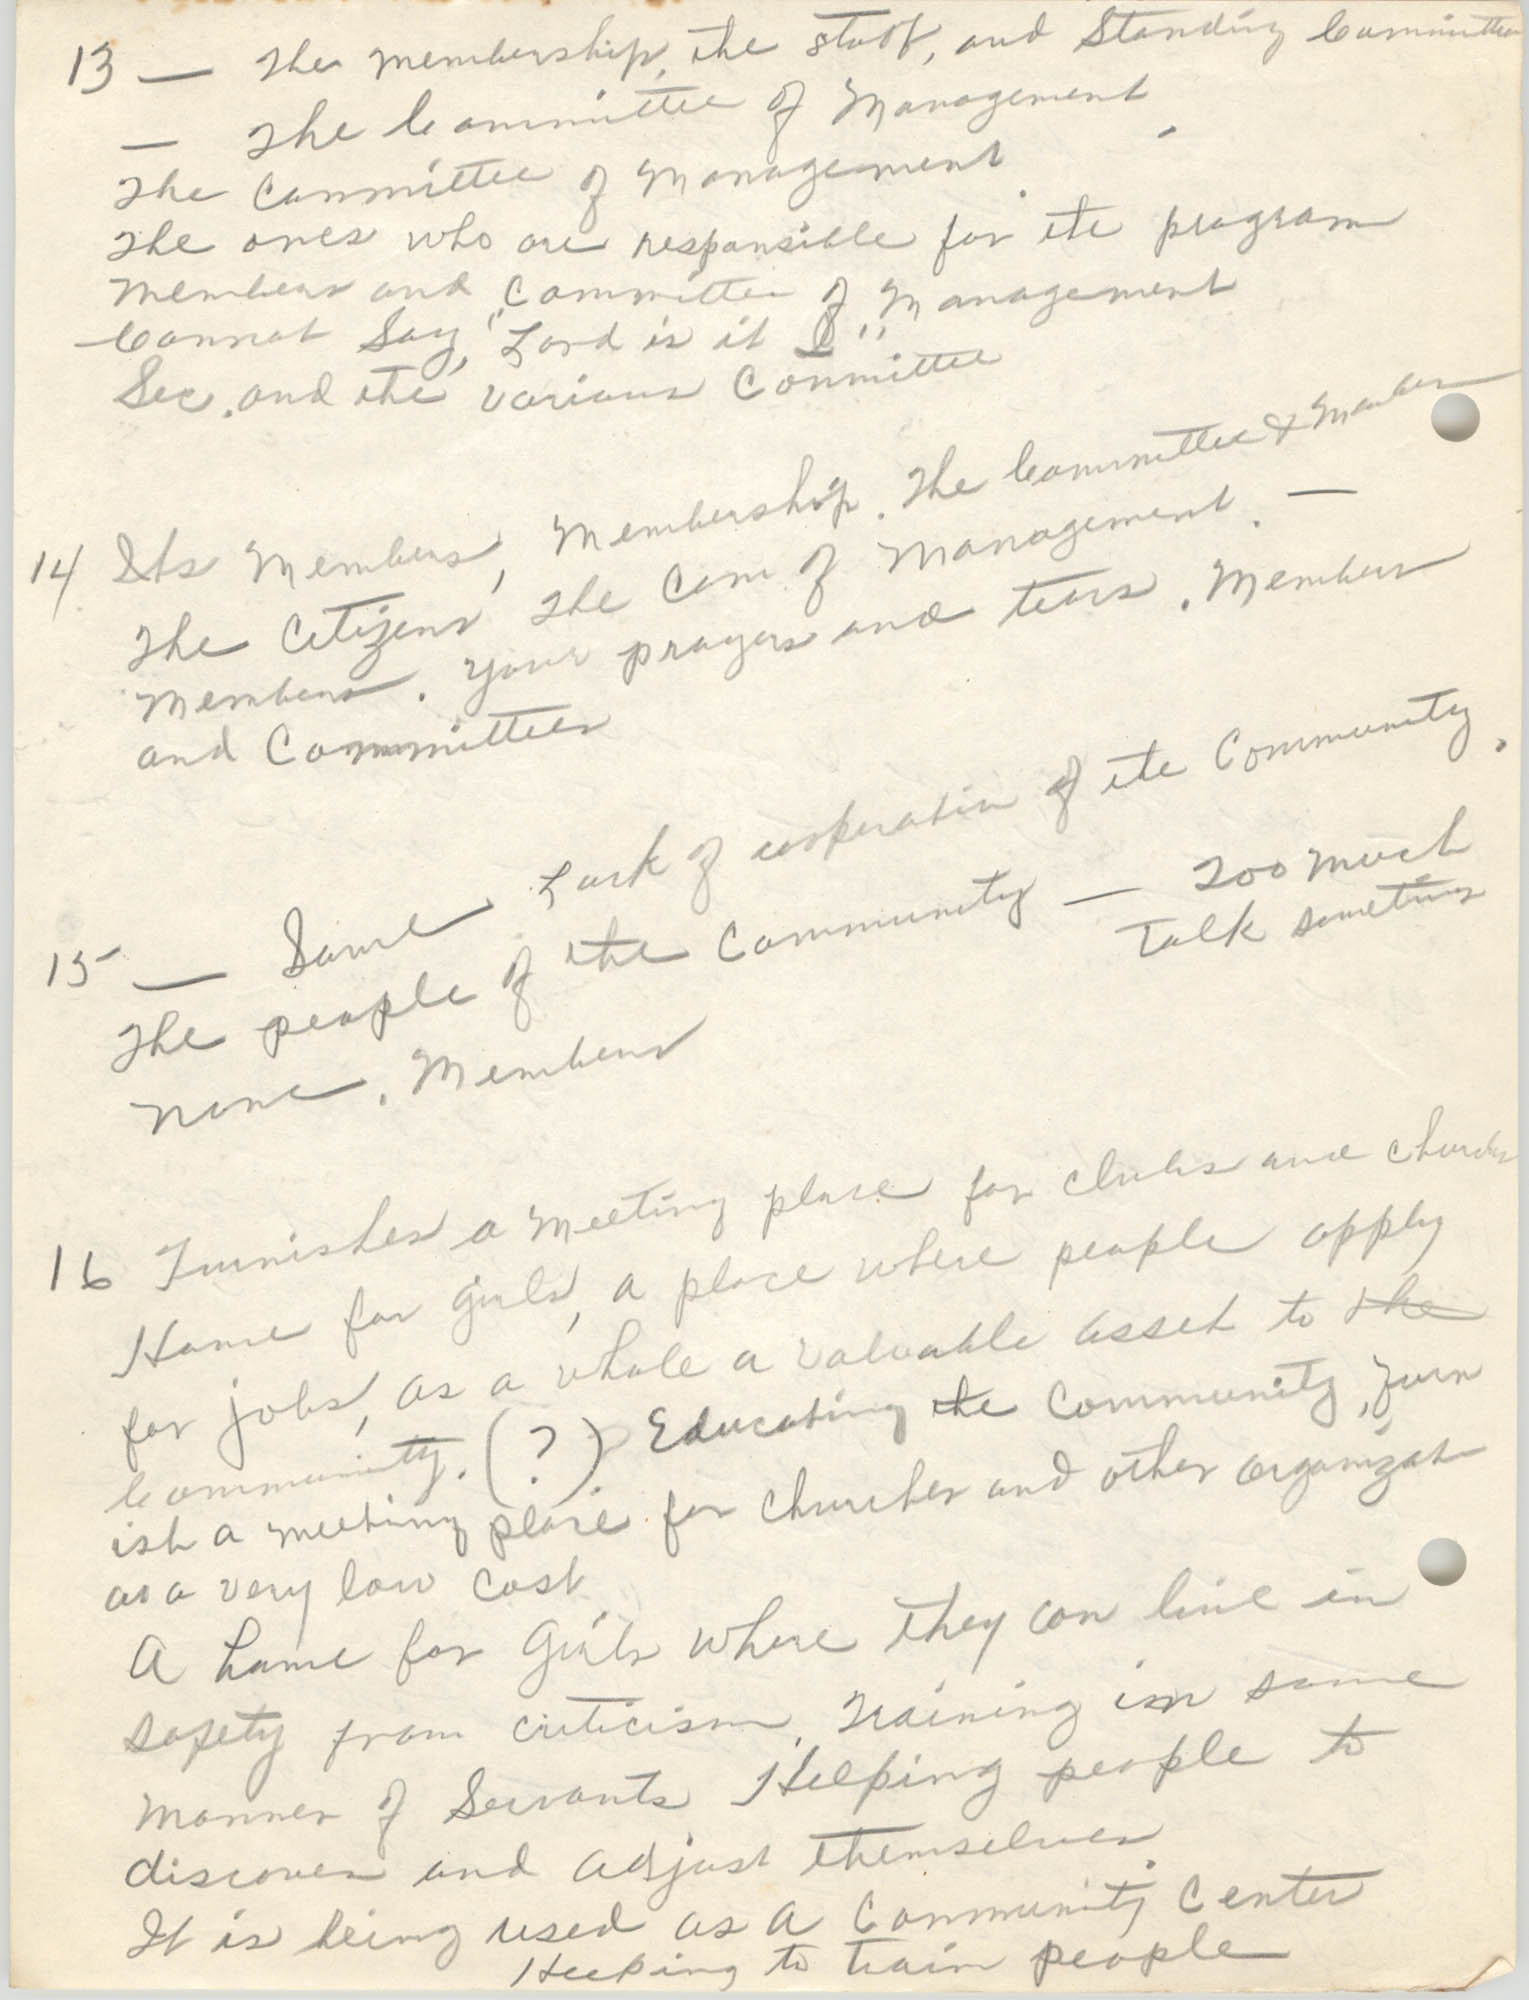 Coming Street Y.W.C.A., Completed Questionnaire Number 12, Page 6